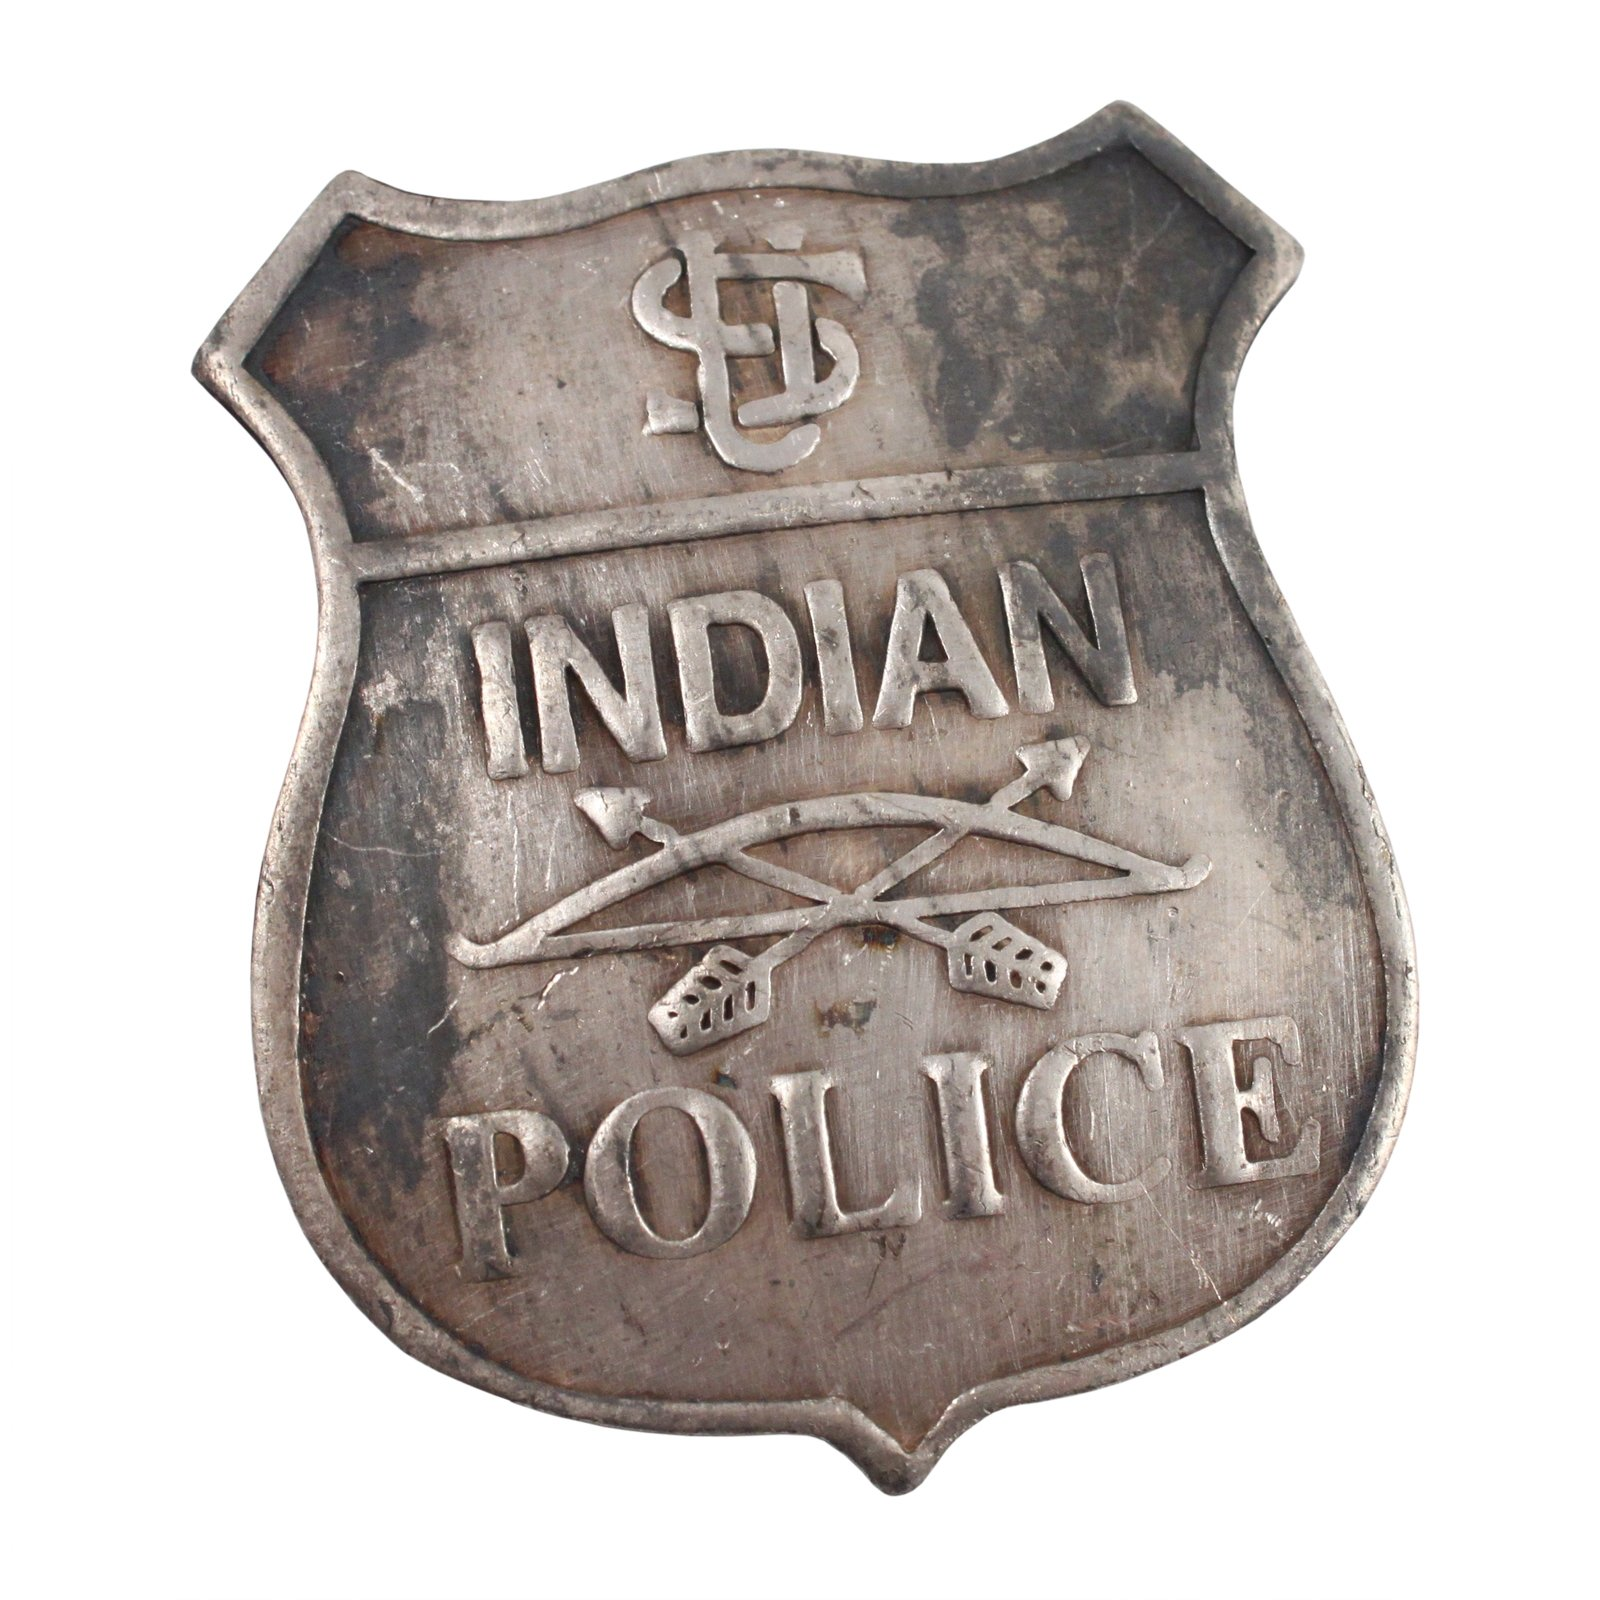 United States Indian Police Old West Badge